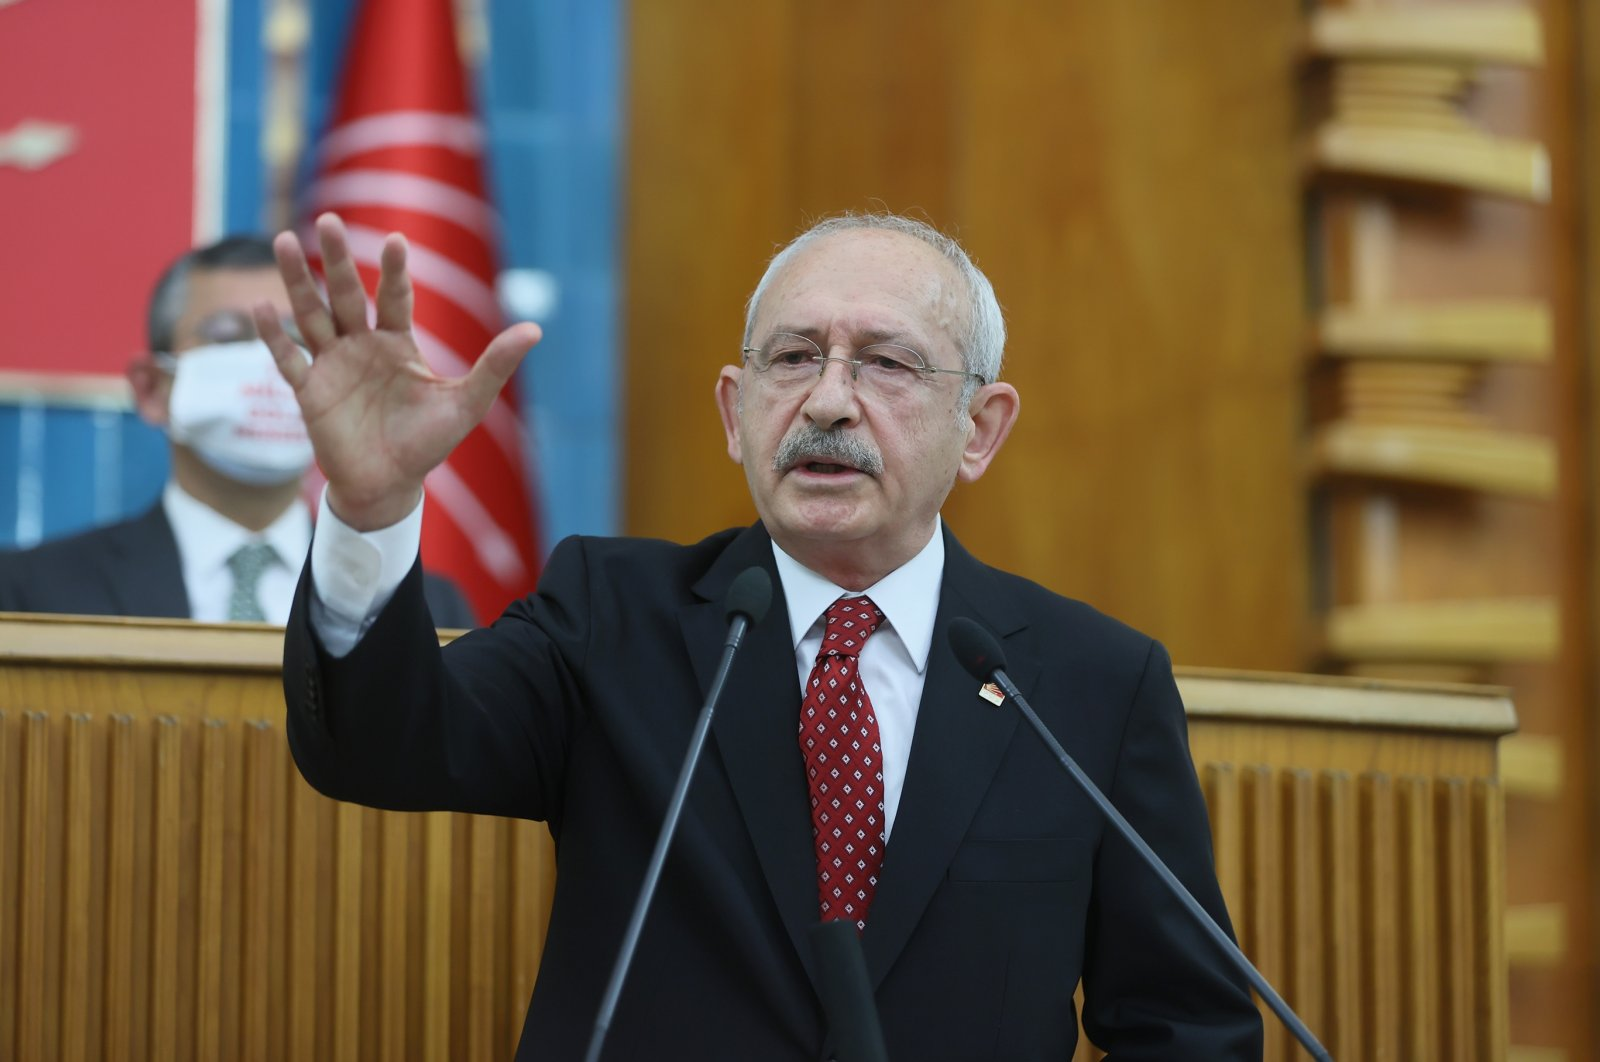 Republican People's Party's (CHP) Chairperson Kemal Kılıçdaroğlu addresses his party's parliamentary group, Ankara, Turkey, April 20, 2021. (AA Photo)